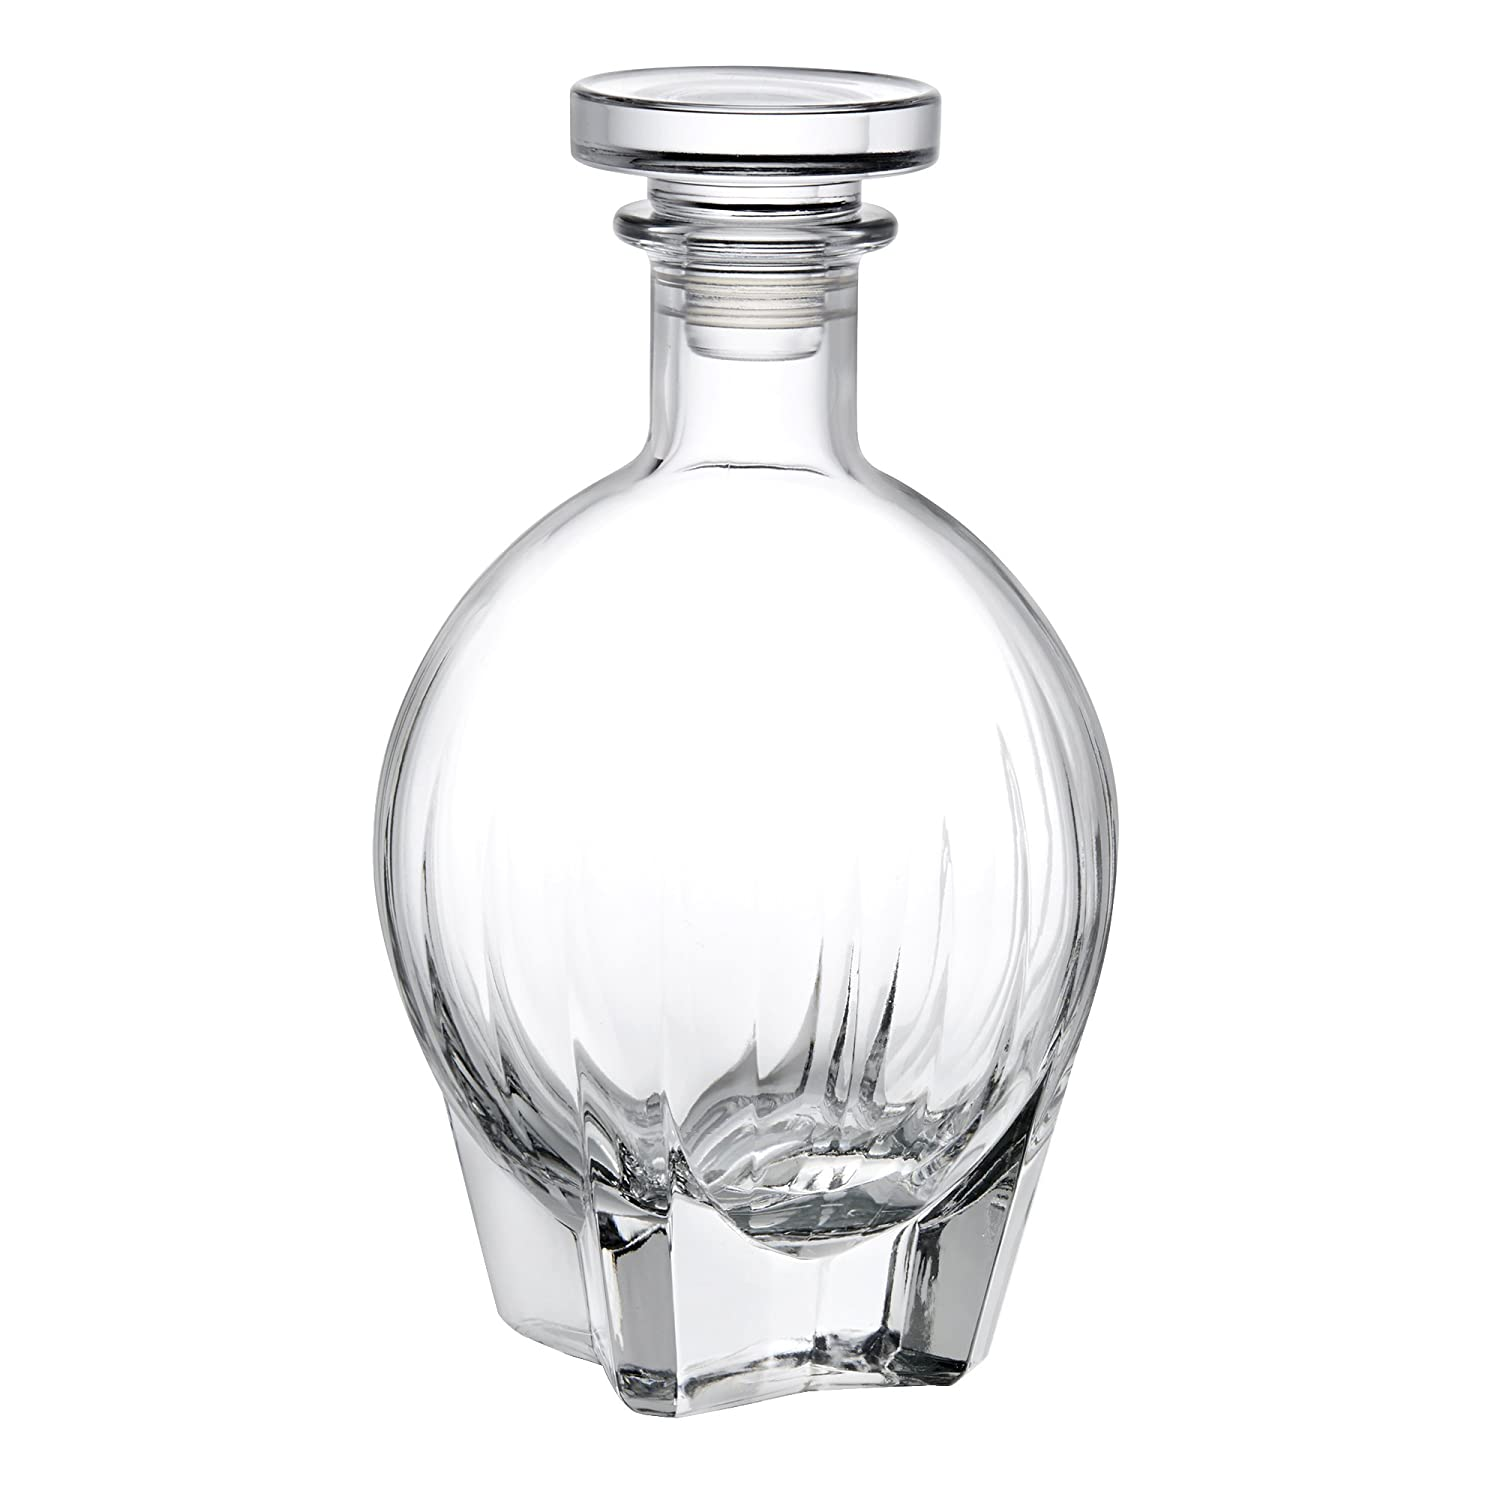 AMAVEL - Elegant Whisky Decanter